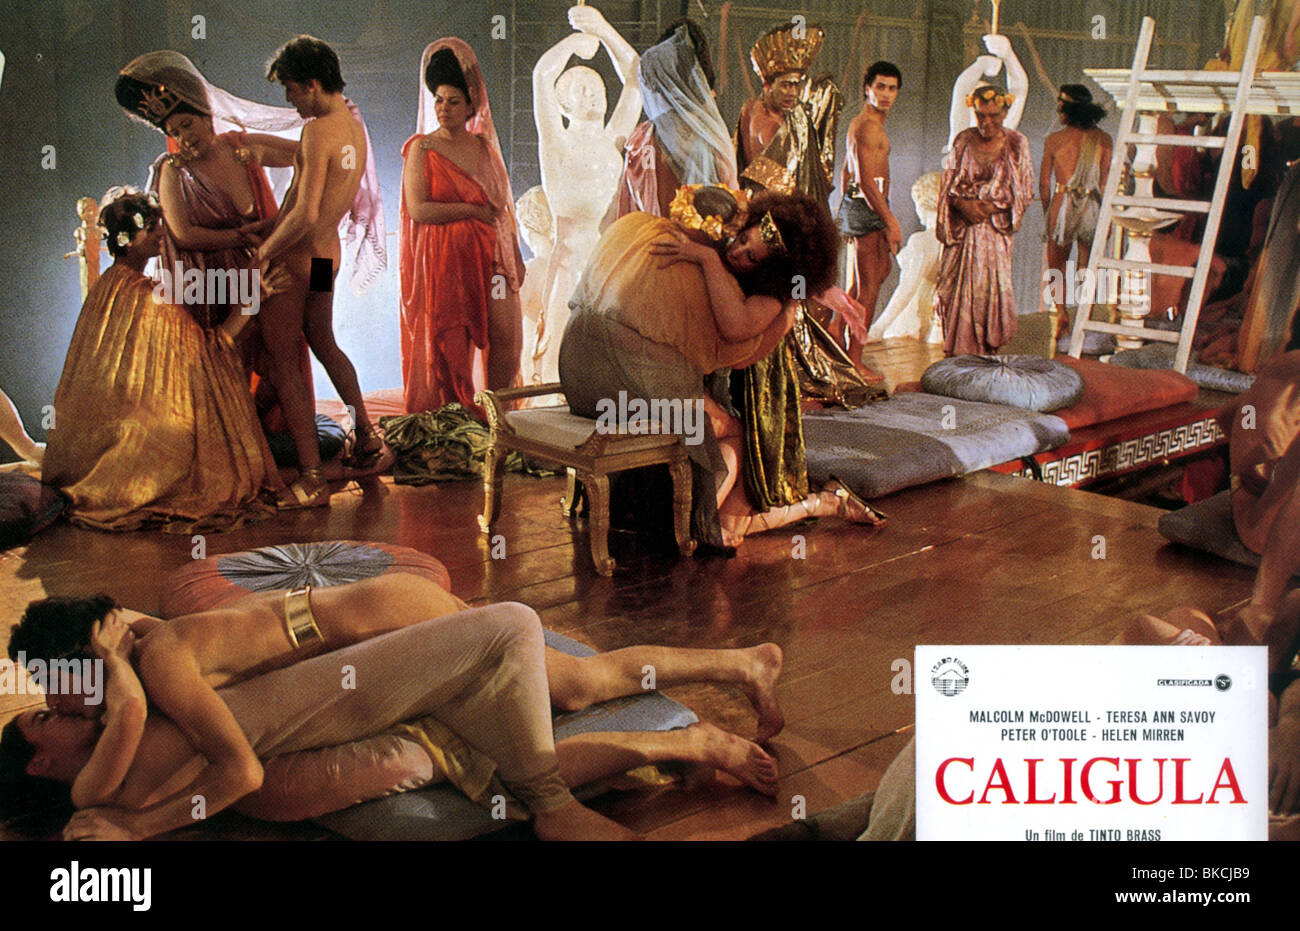 caligula sex